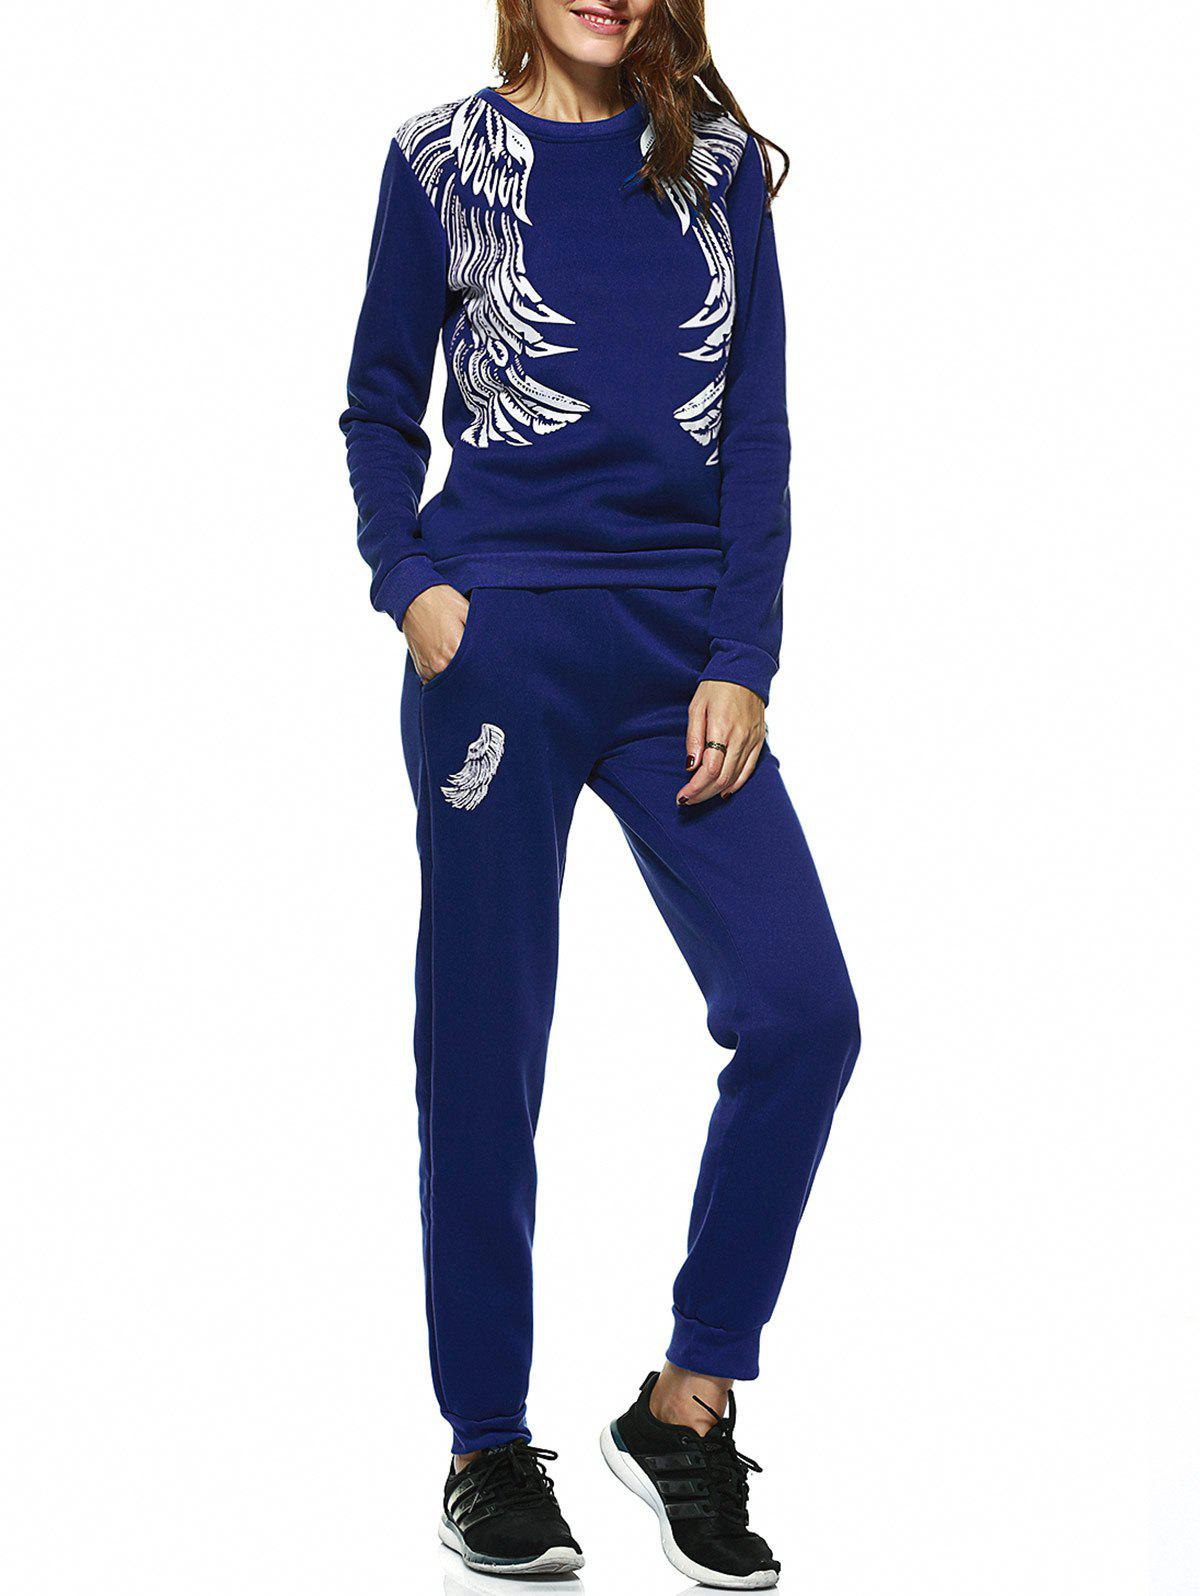 Wing Print Sweatshirt and Jogger Sports Pant - SAPPHIRE BLUE M